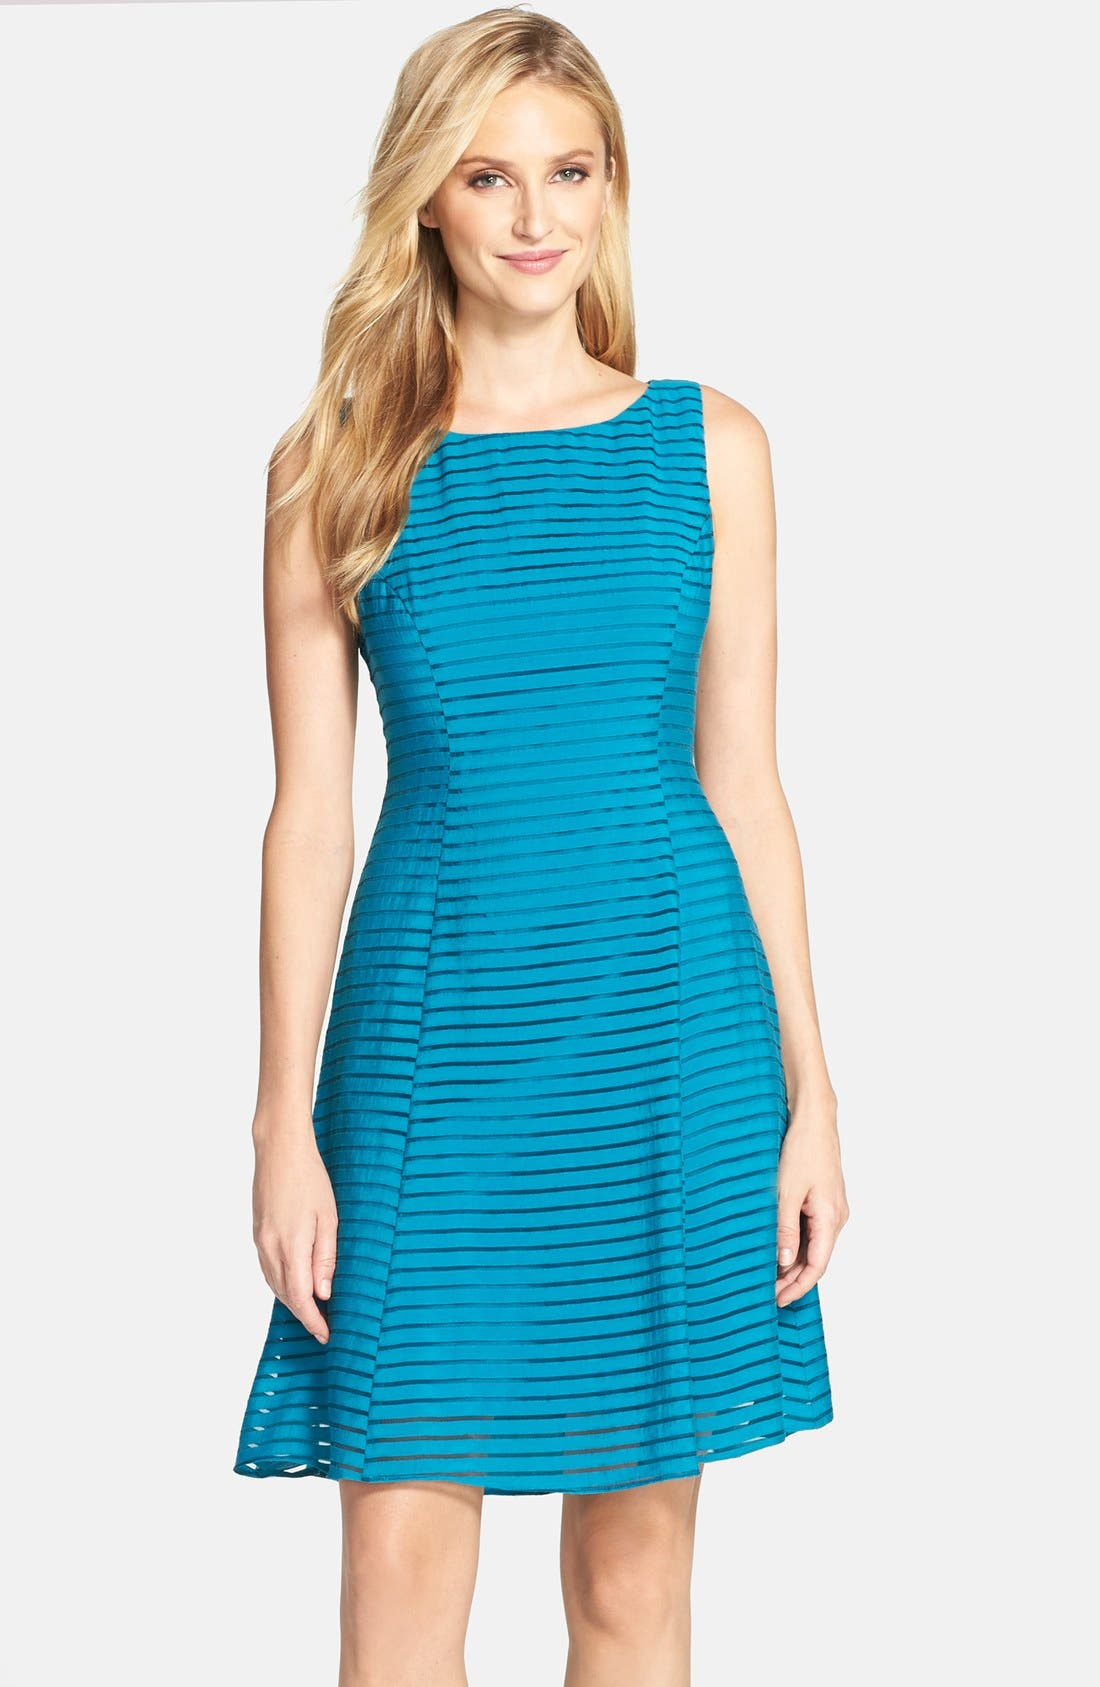 Main Image - Adrianna Papell Ribbon Stripe Fit & Flare Dress